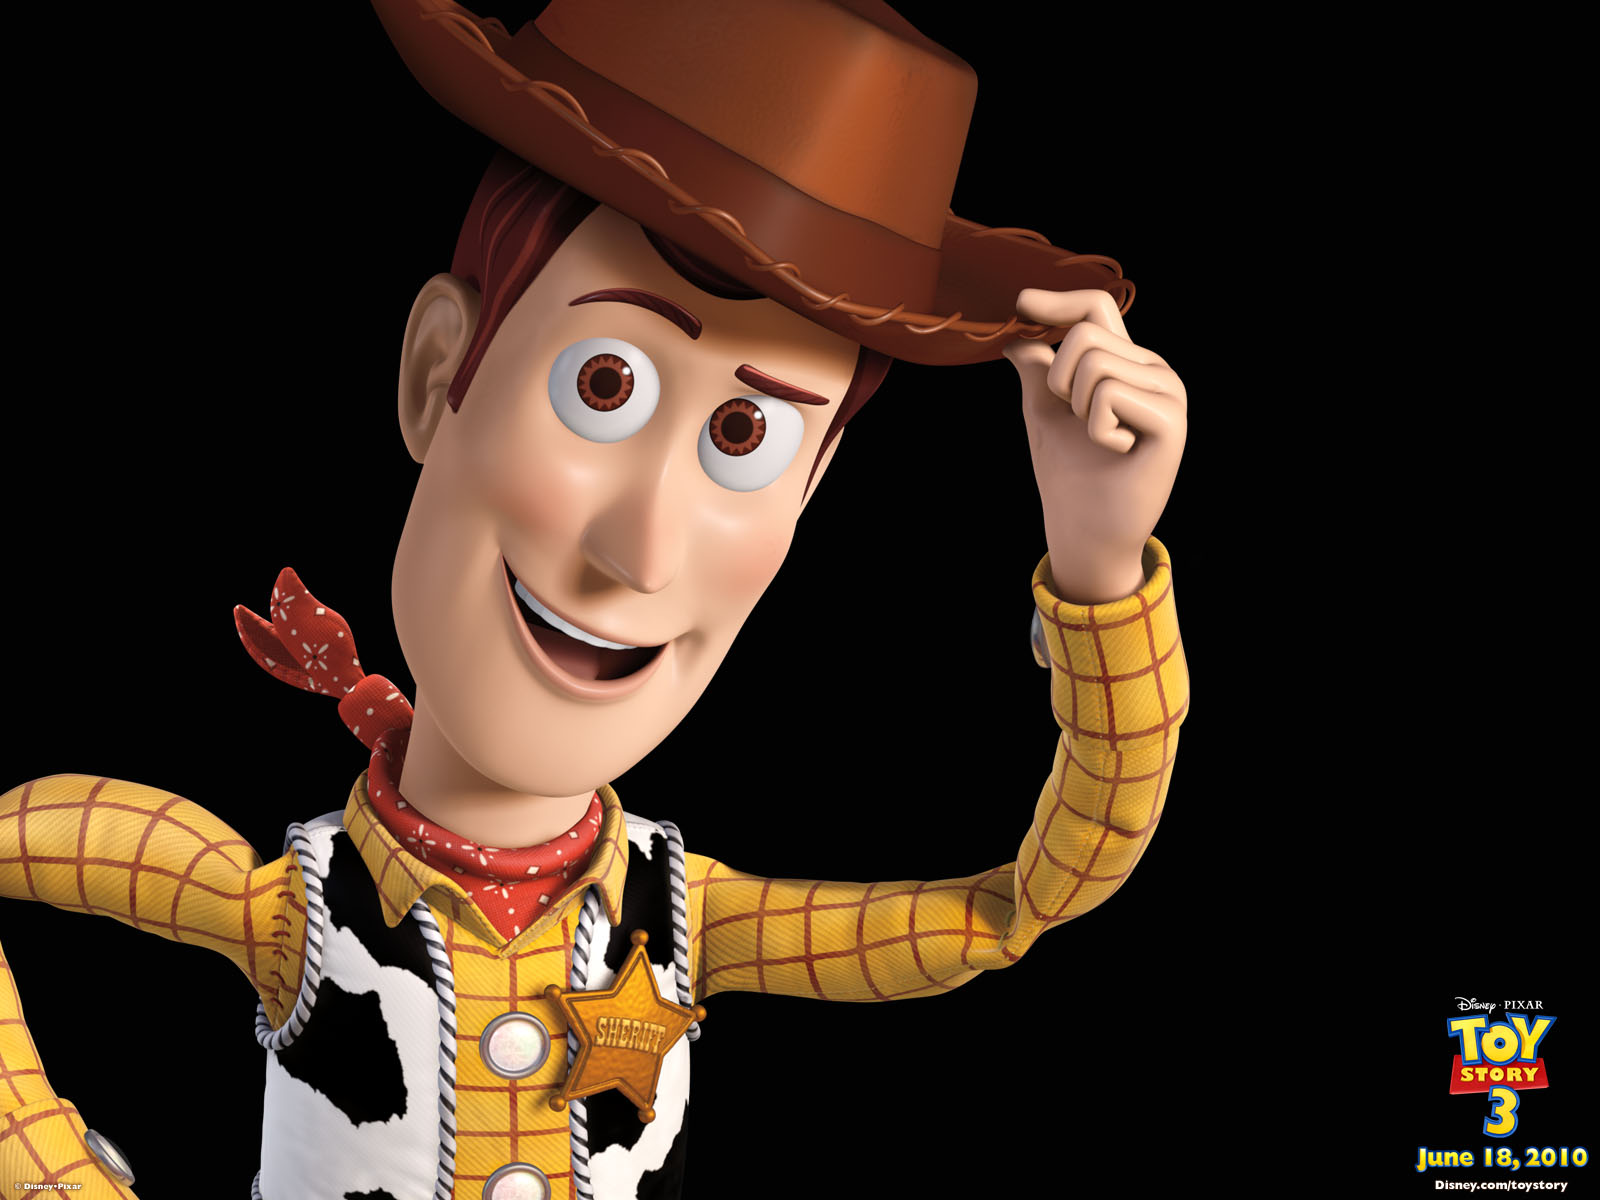 Toy Story Wallpapers Hd 1600x1200